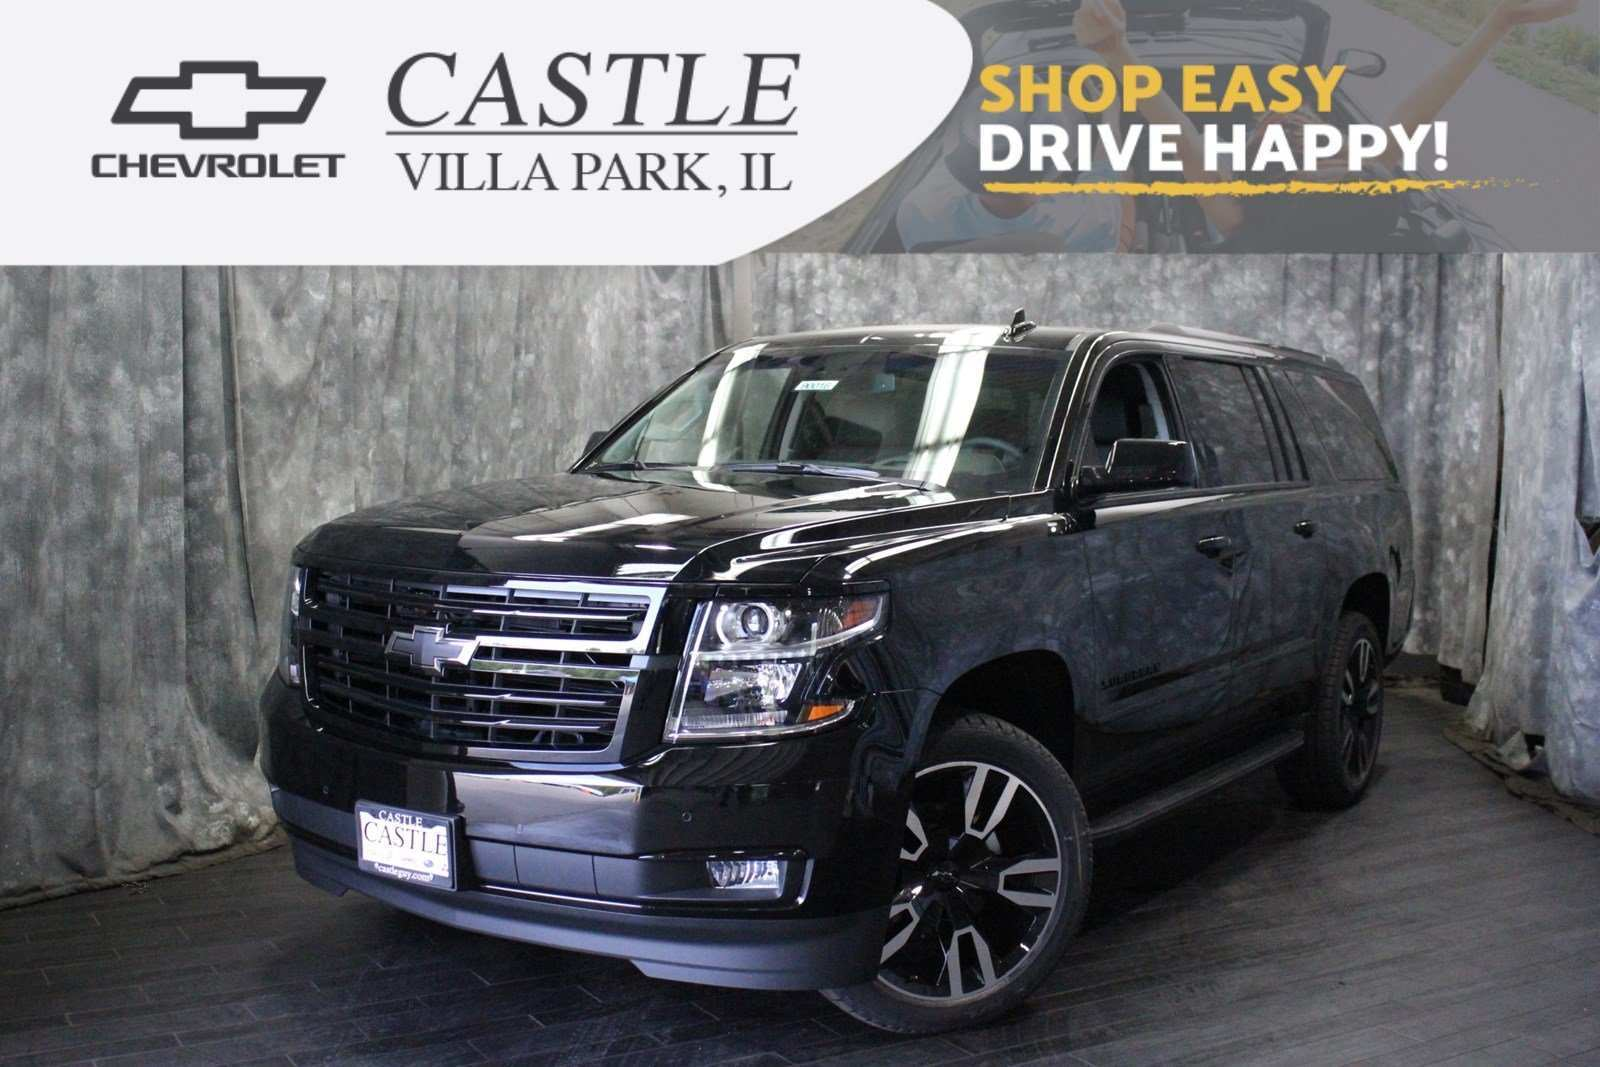 70 All New 2019 Chevrolet Suburban Prices